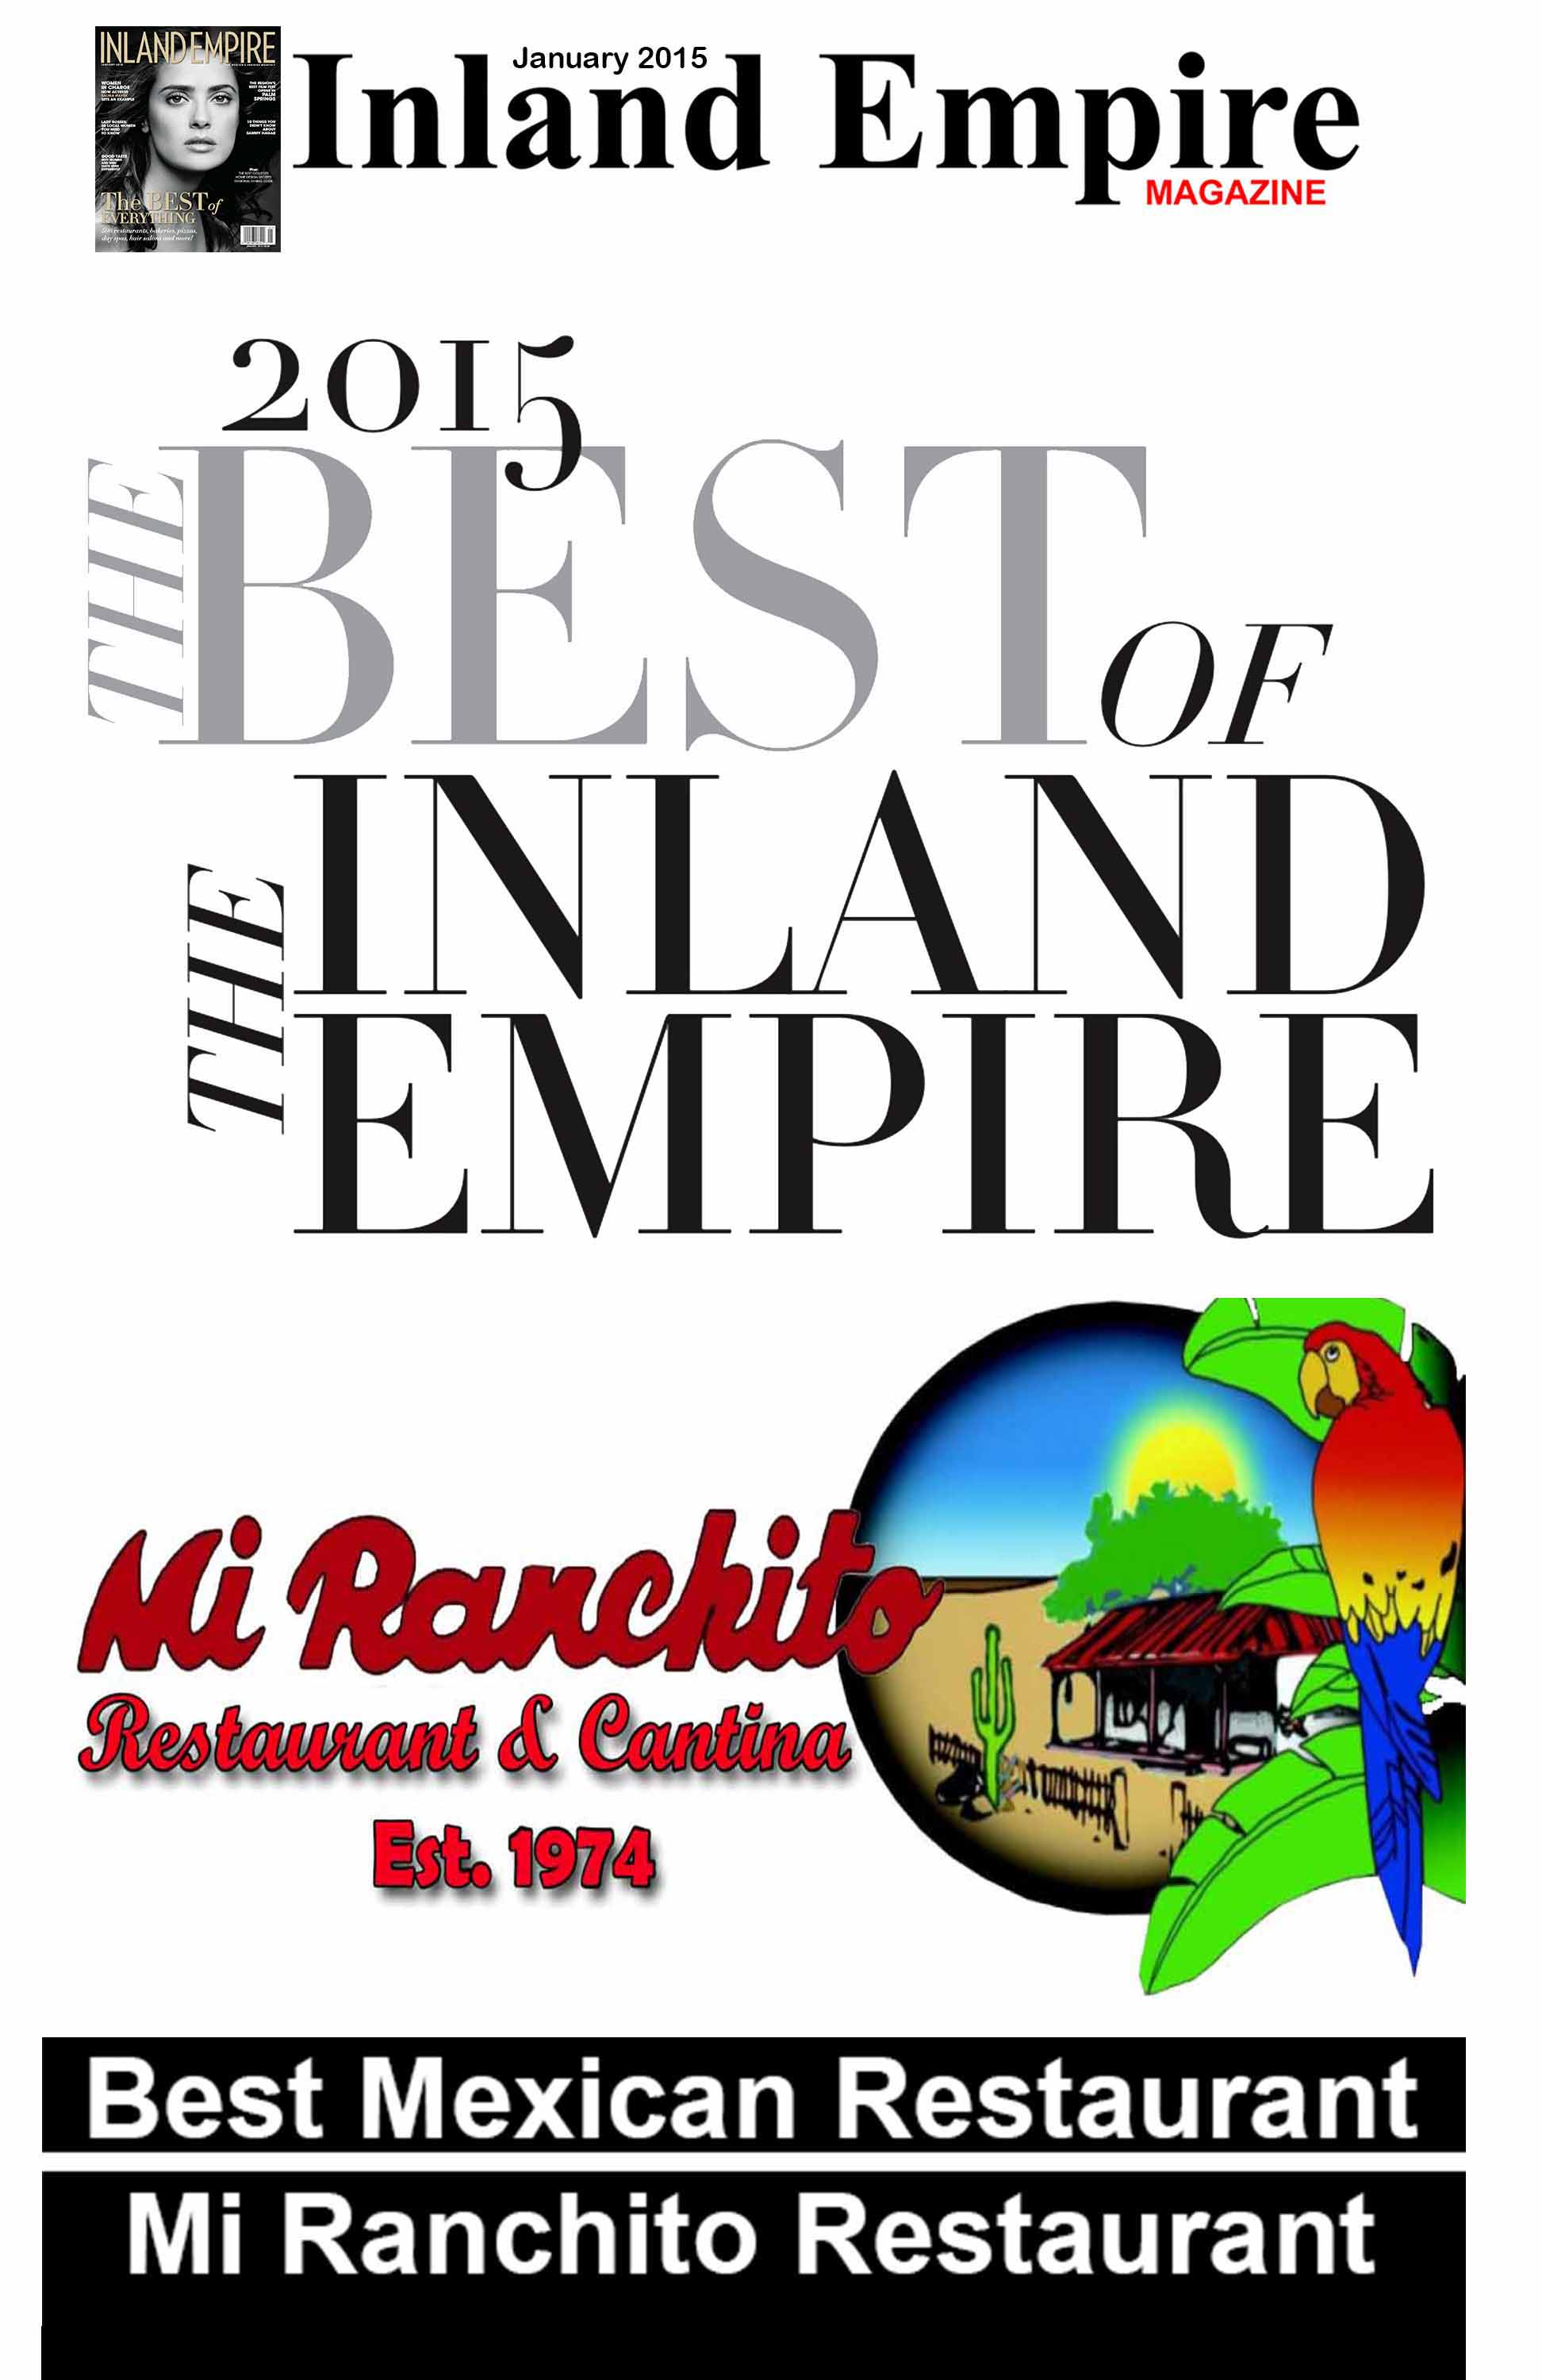 2015 Best of the Inland Empire : Mi Ranchito